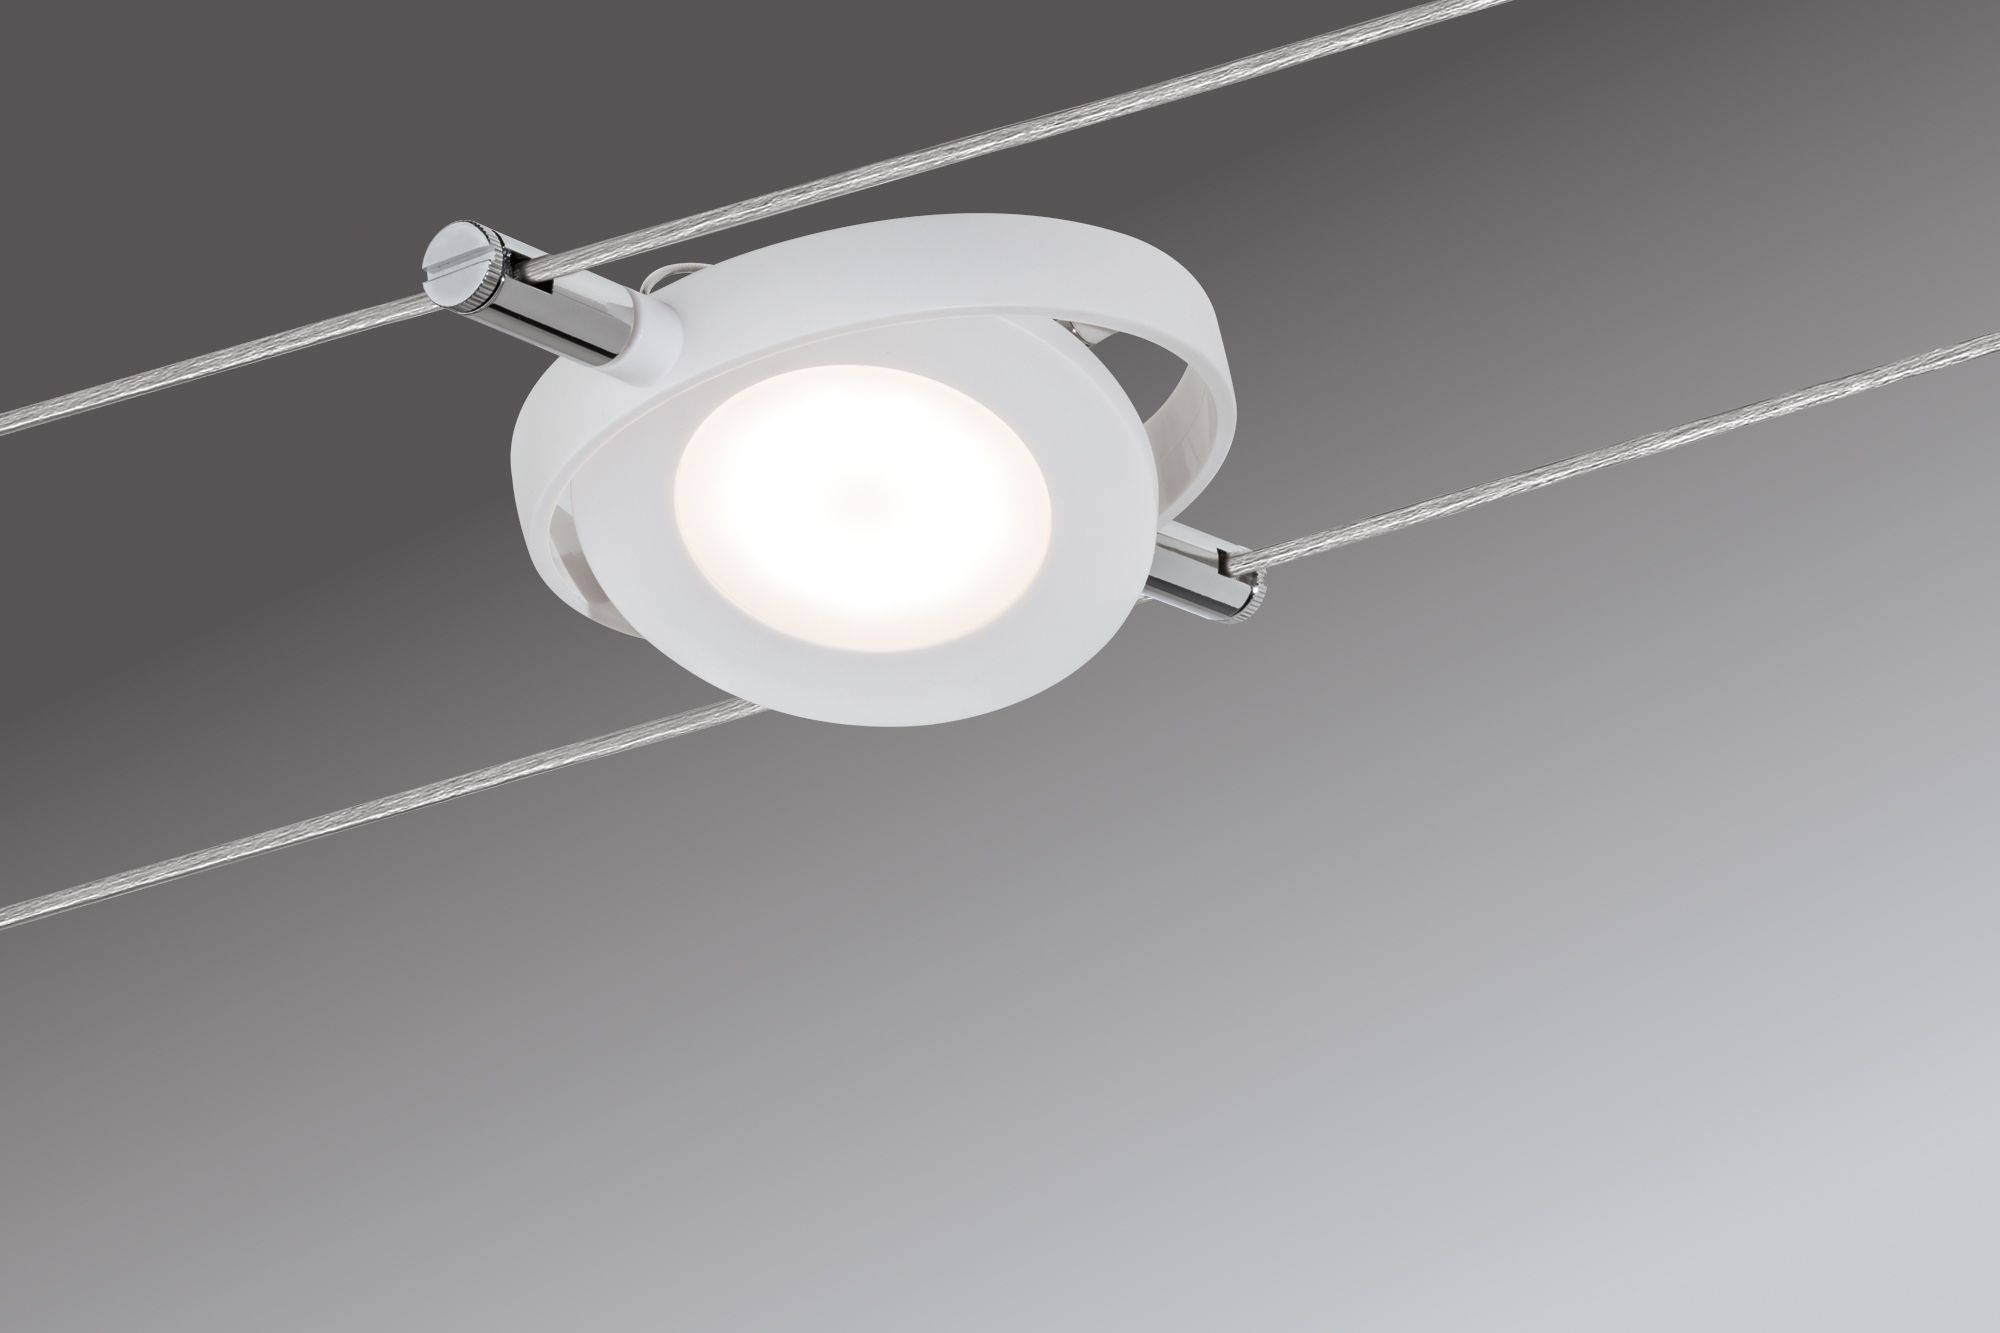 Sap E Commerce Led Ceiling Lights Lamp